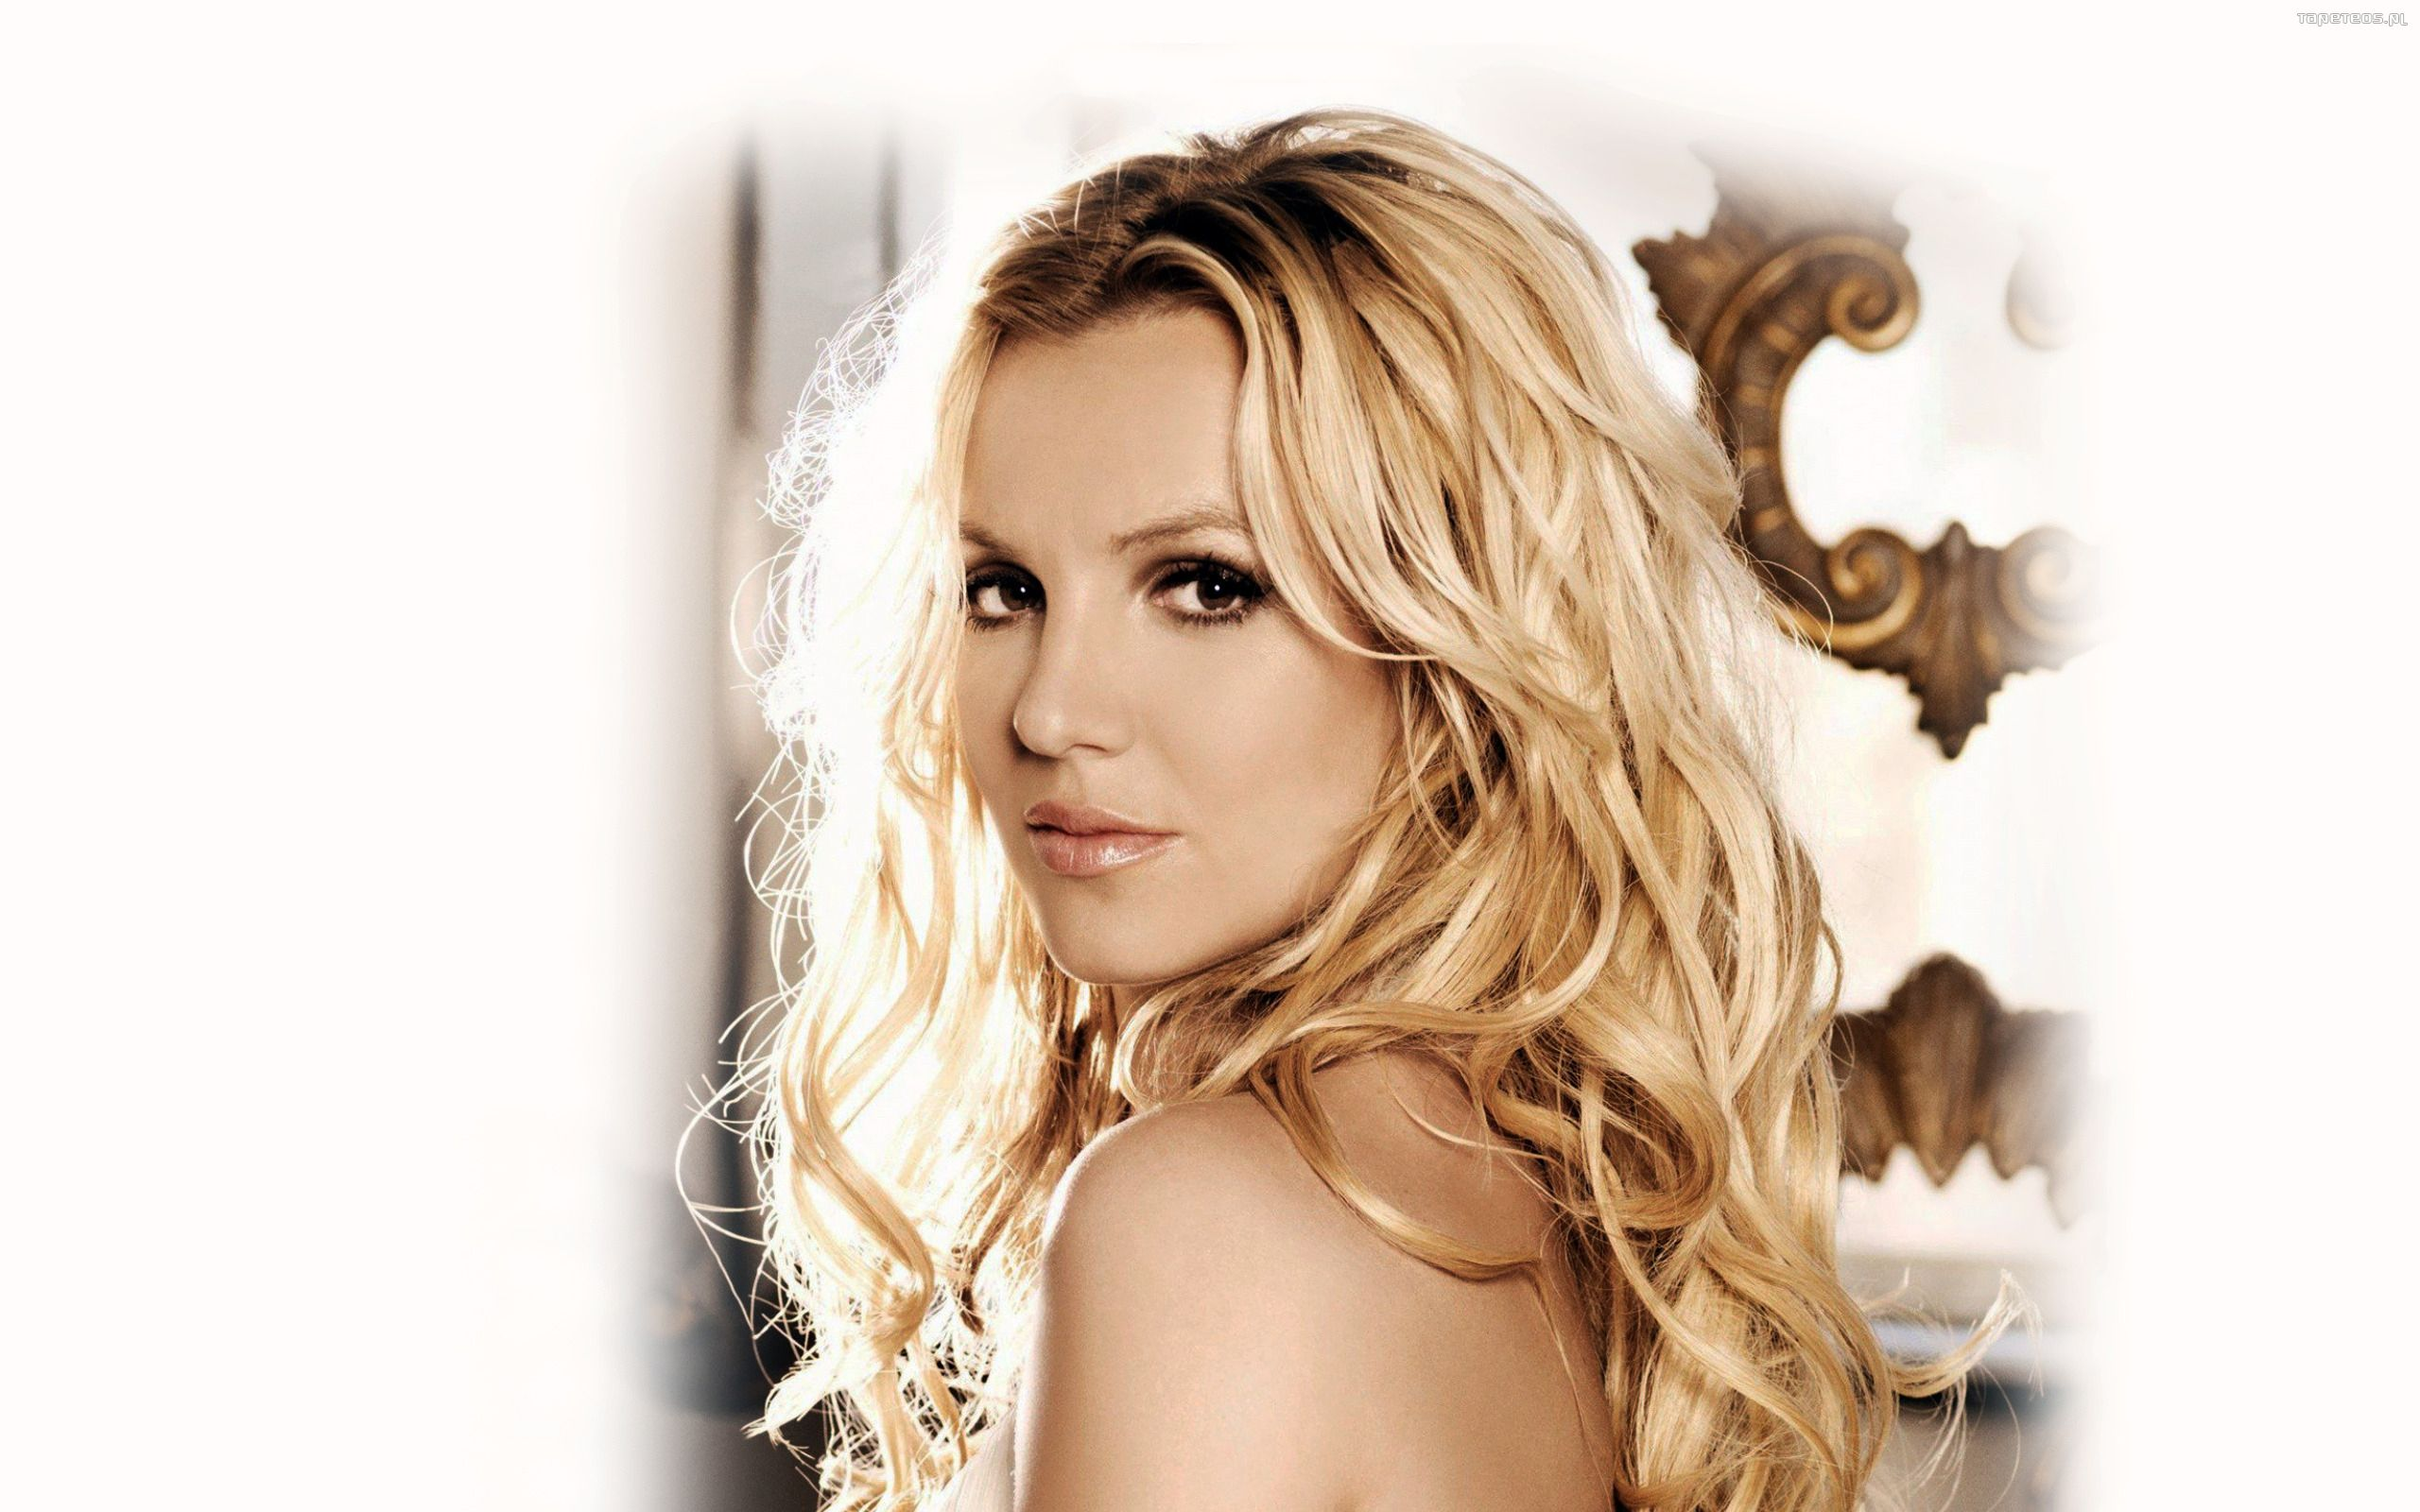 Britney Spears 143